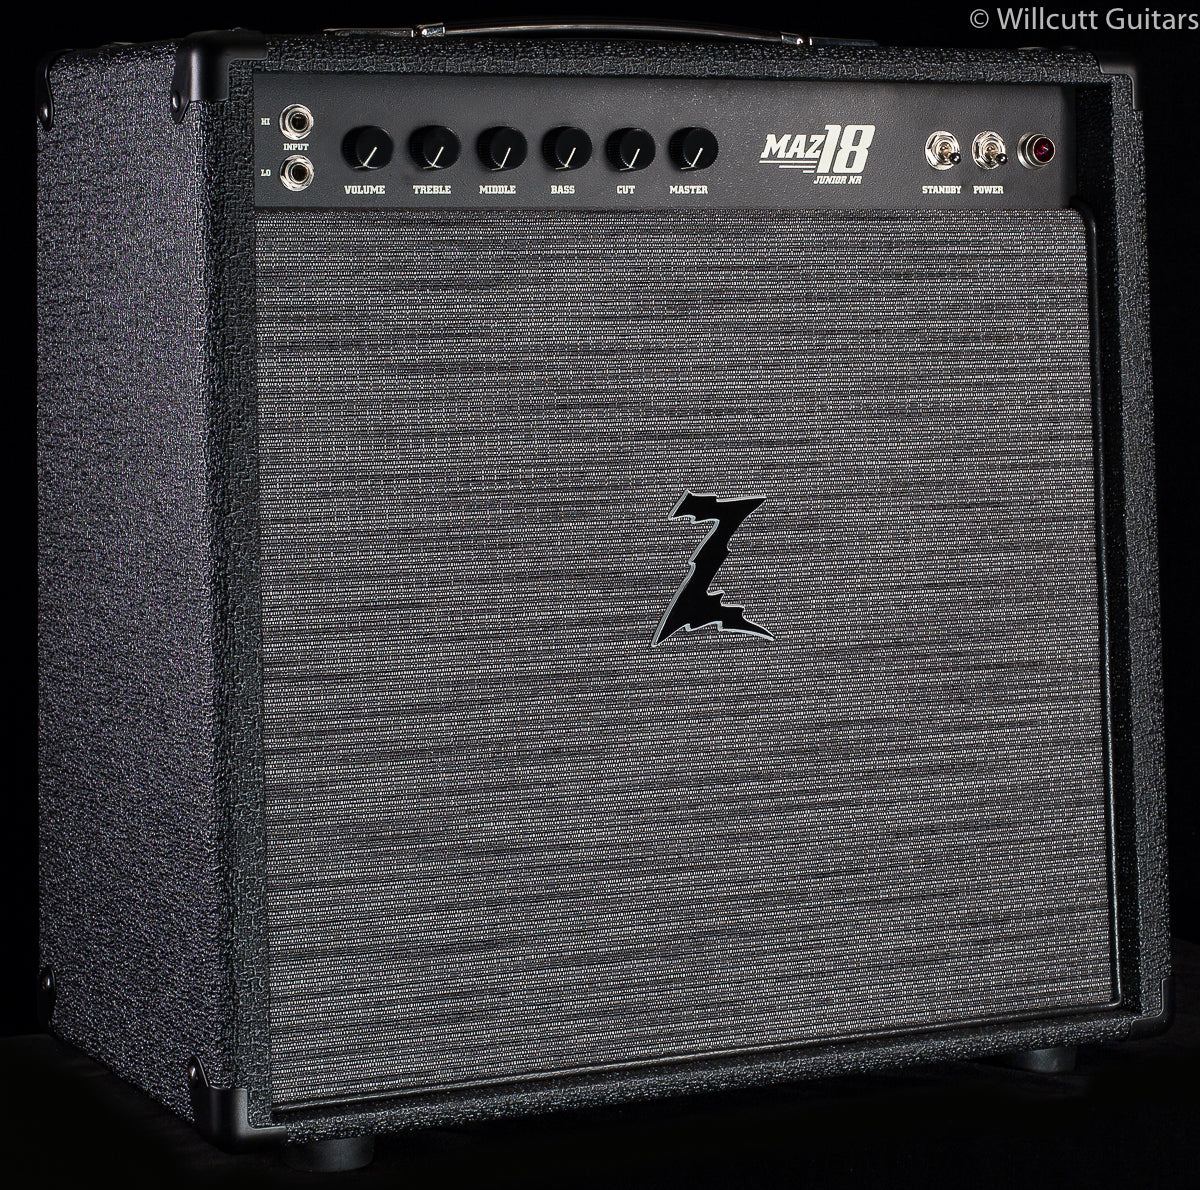 Dr. Z Maz 18 NR 112 Black ZWreck Piping Studio Cab